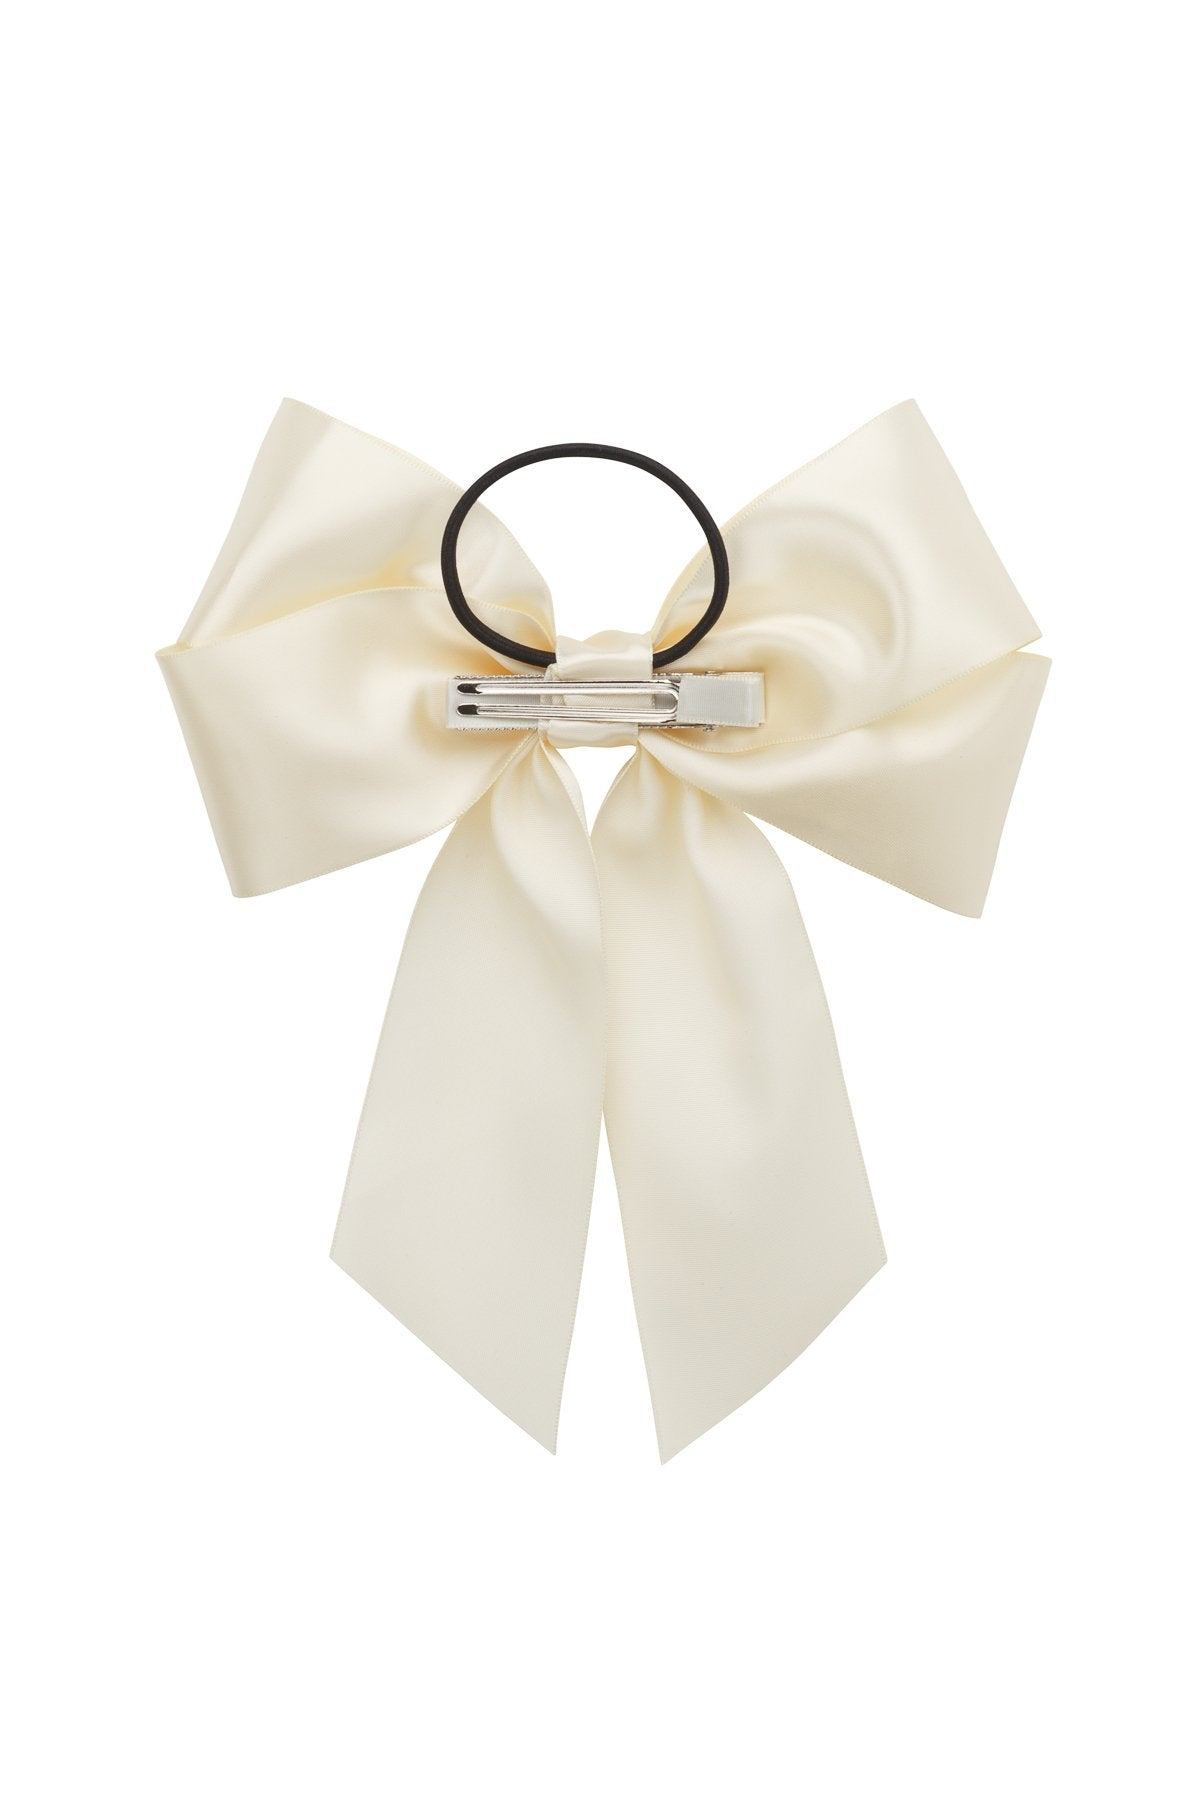 Oversized Bow Pony/Clip - Ivory - PROJECT 6, modest fashion